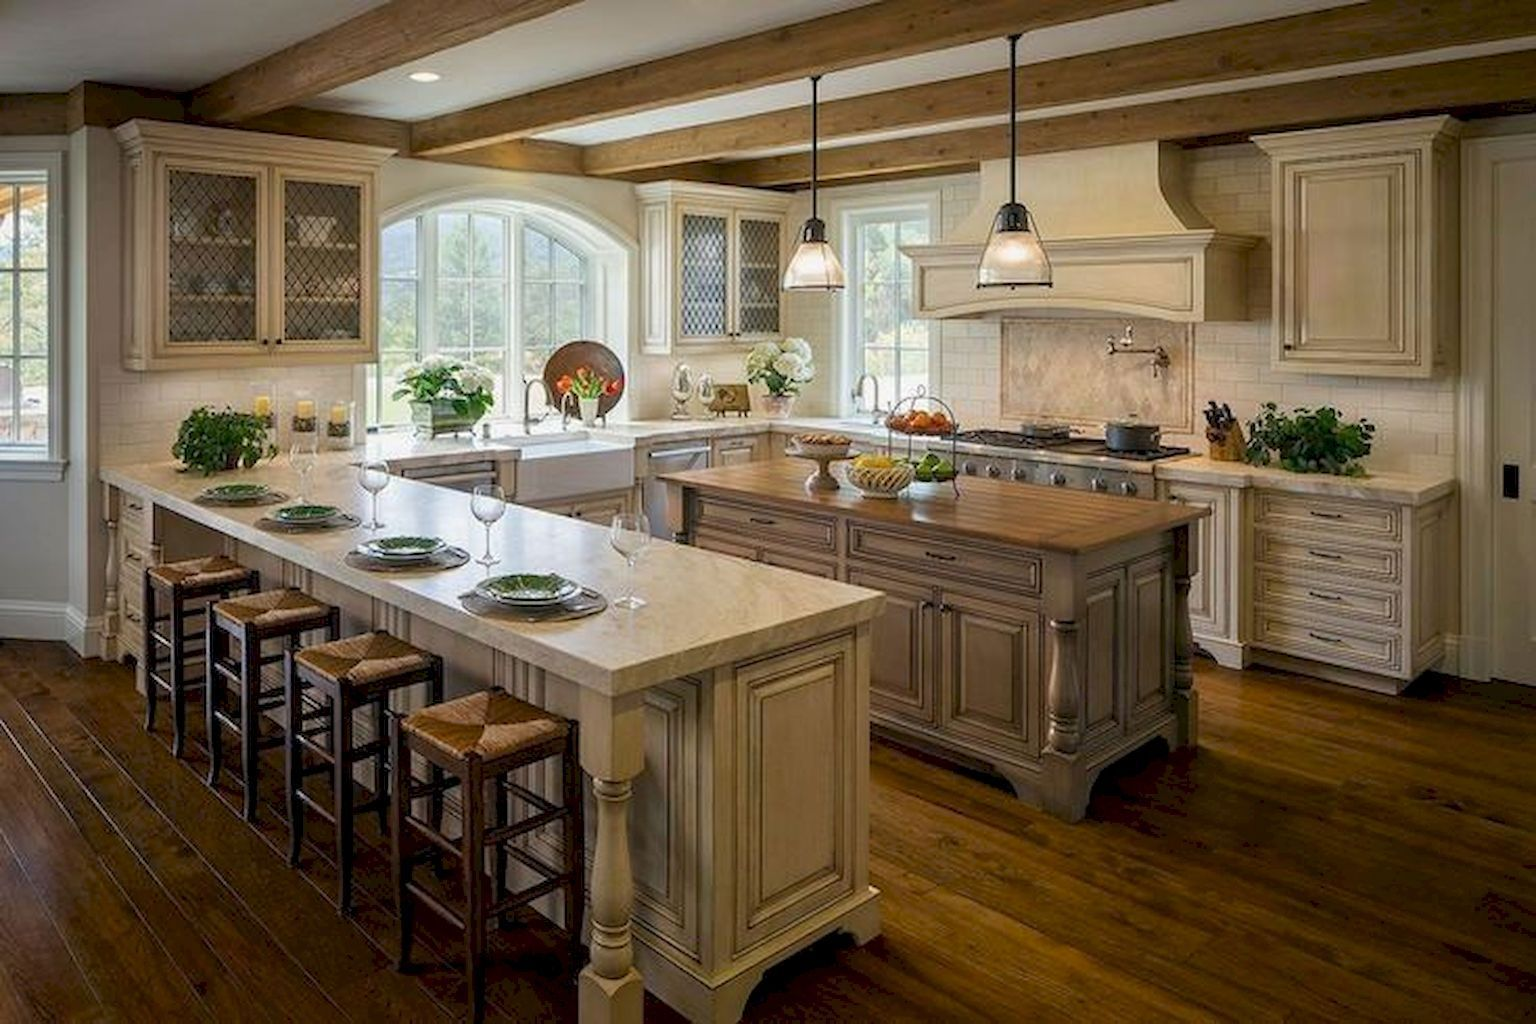 Best Stunning French Country Kitchen Cabinets Cream 39 640 x 480